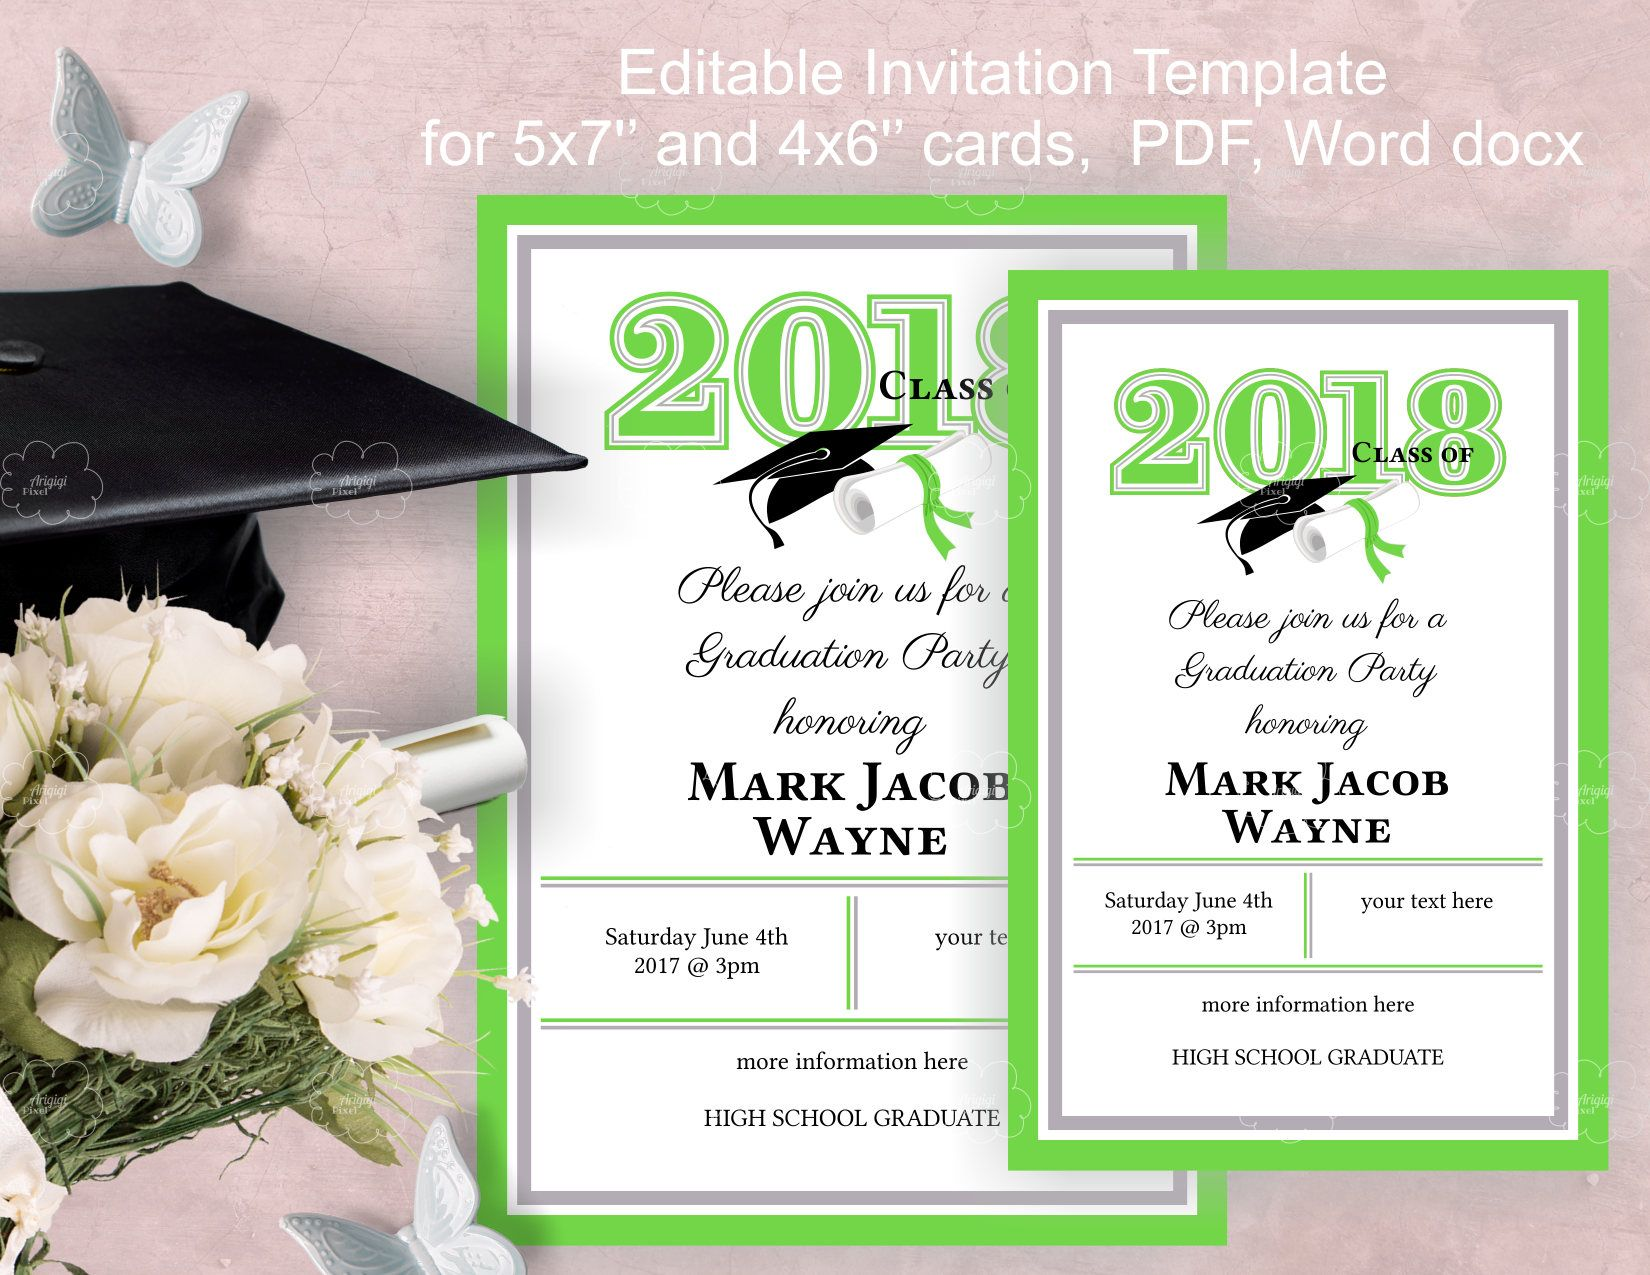 wildflower wedding invitation templates%0A create resume for free